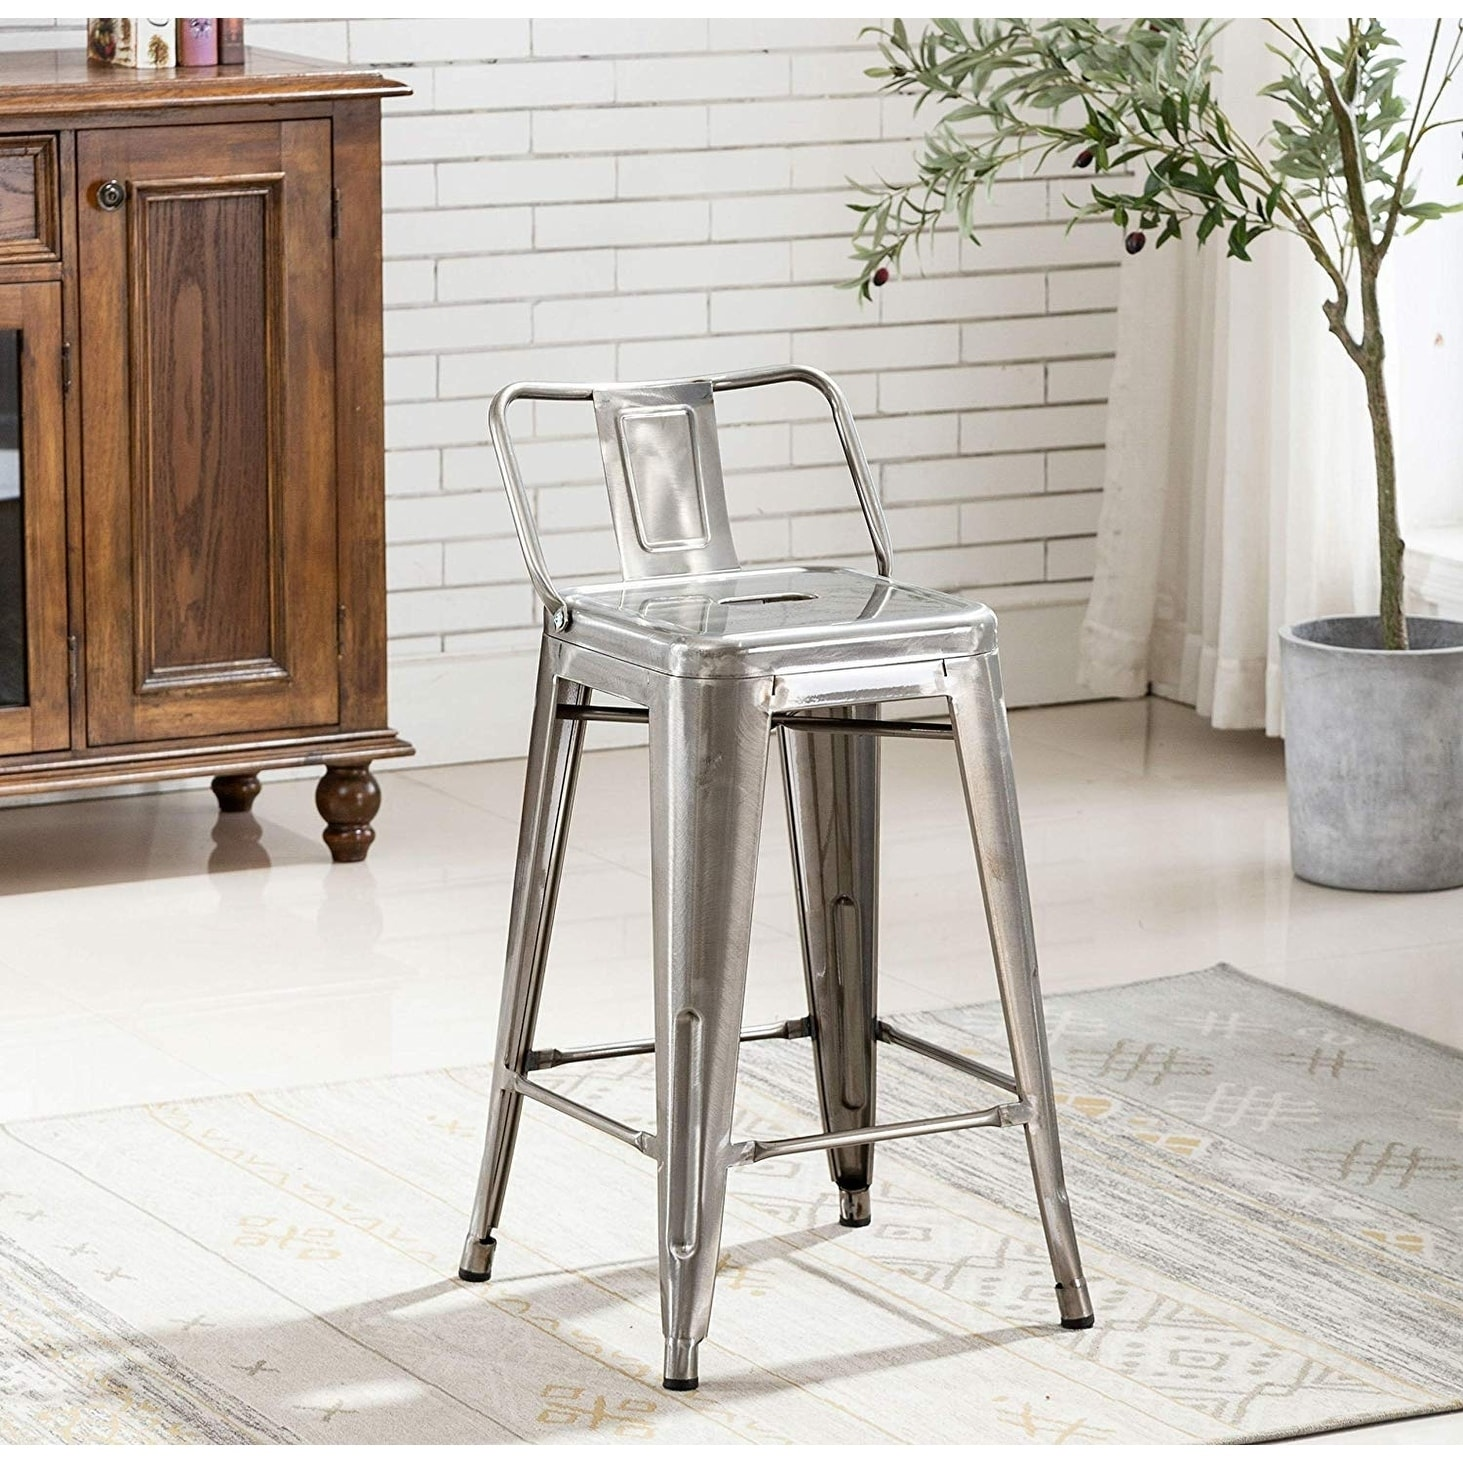 Image of: Shop Black Friday Deals On Industrial 24 Inch Galvanized Distressed Kitchen Indoor Outdoor Low Back Metal Counter Height Stool Set Of 4 Bar Stools Overstock 29027278